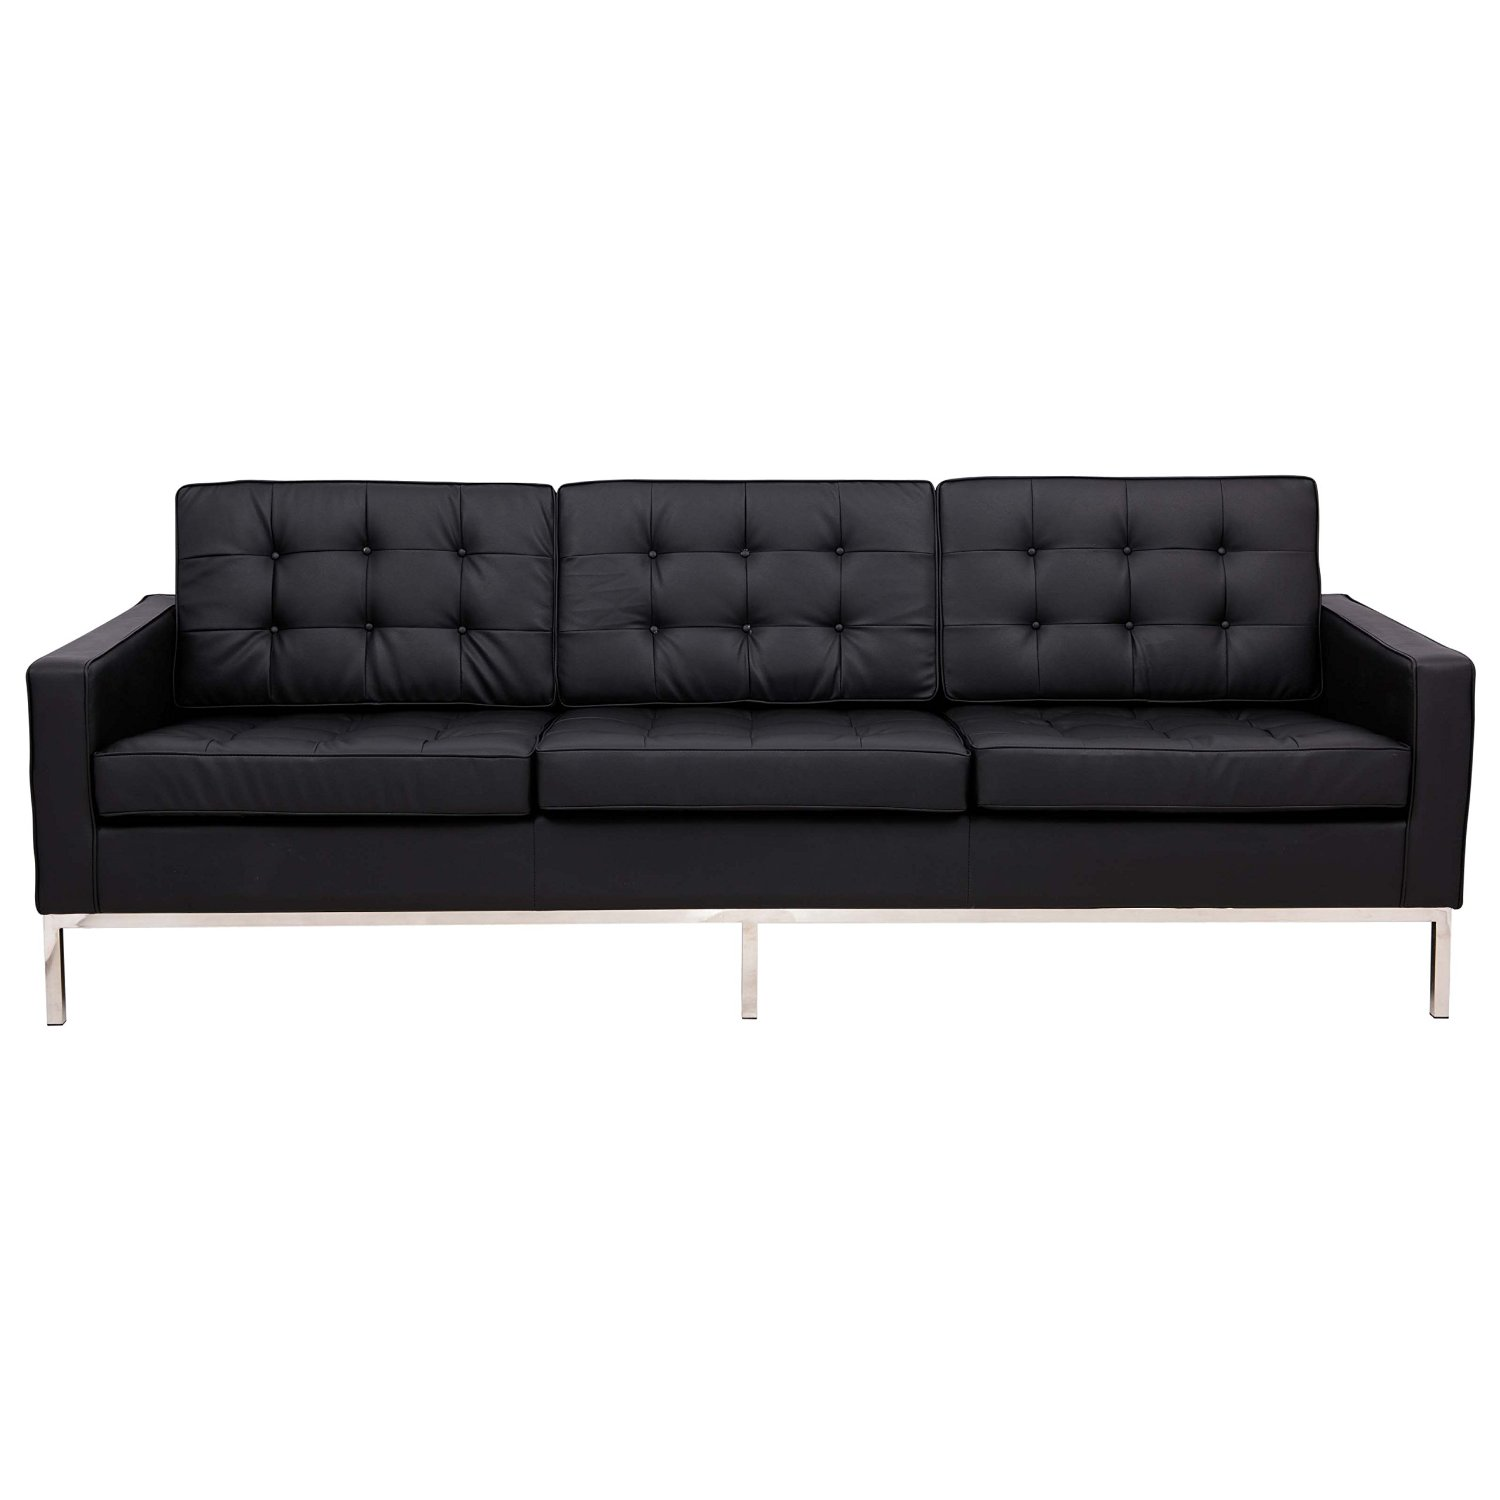 LeisureMod Florence Style Mid Century Modern Tufted Sofa in Black Leather